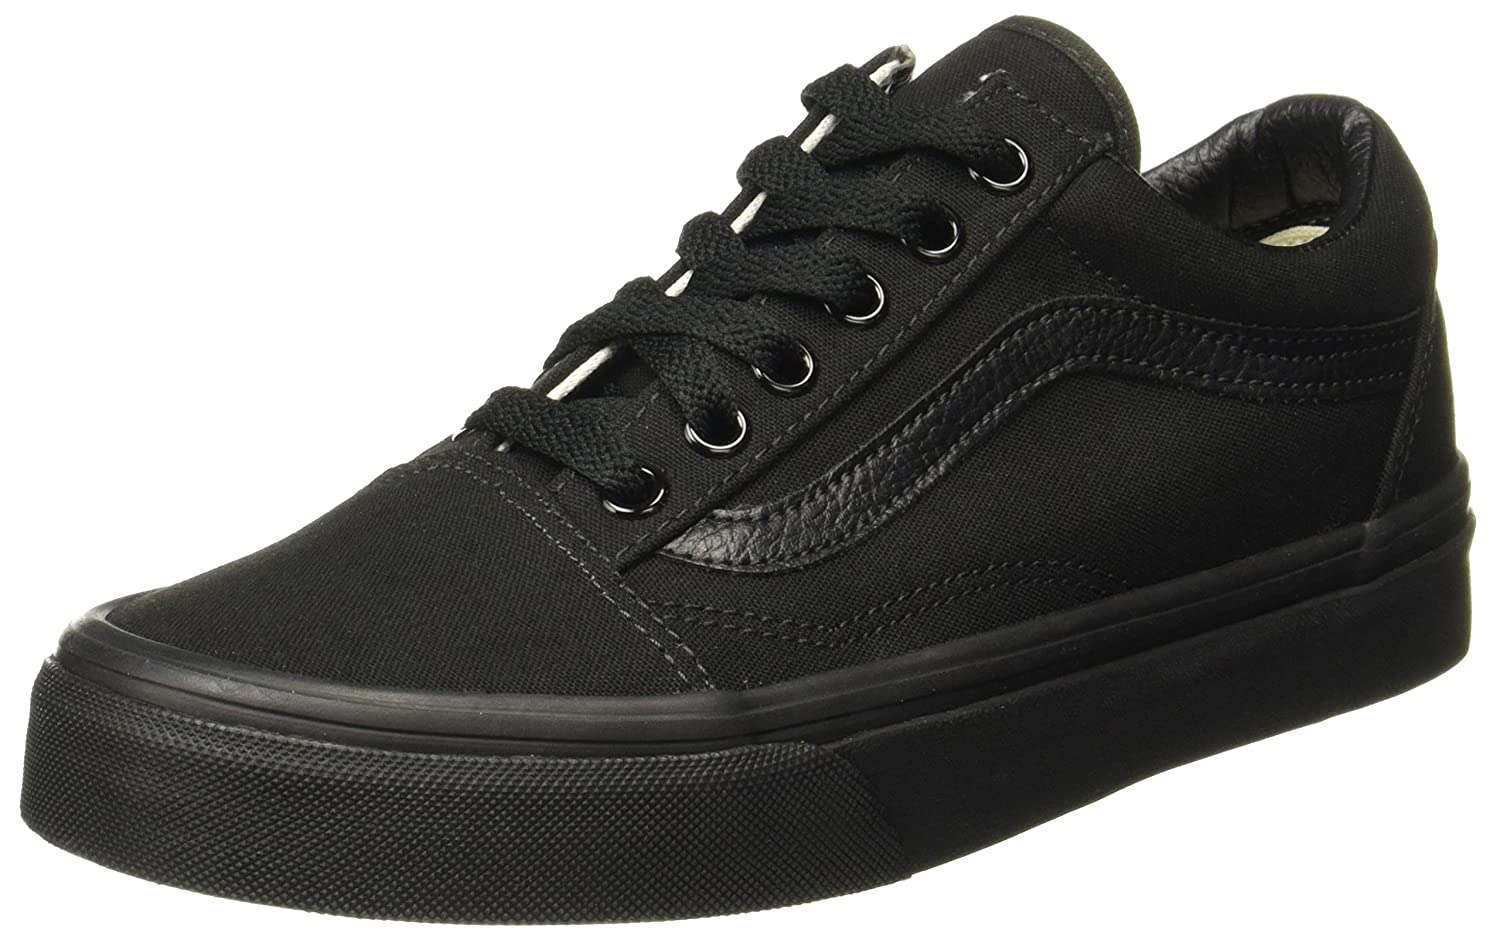 Vans Old Skool Unisex Adults' Low-Top Trainers B001C1FR4K Men's 7.5, Women's 9 Medium|Black/Black